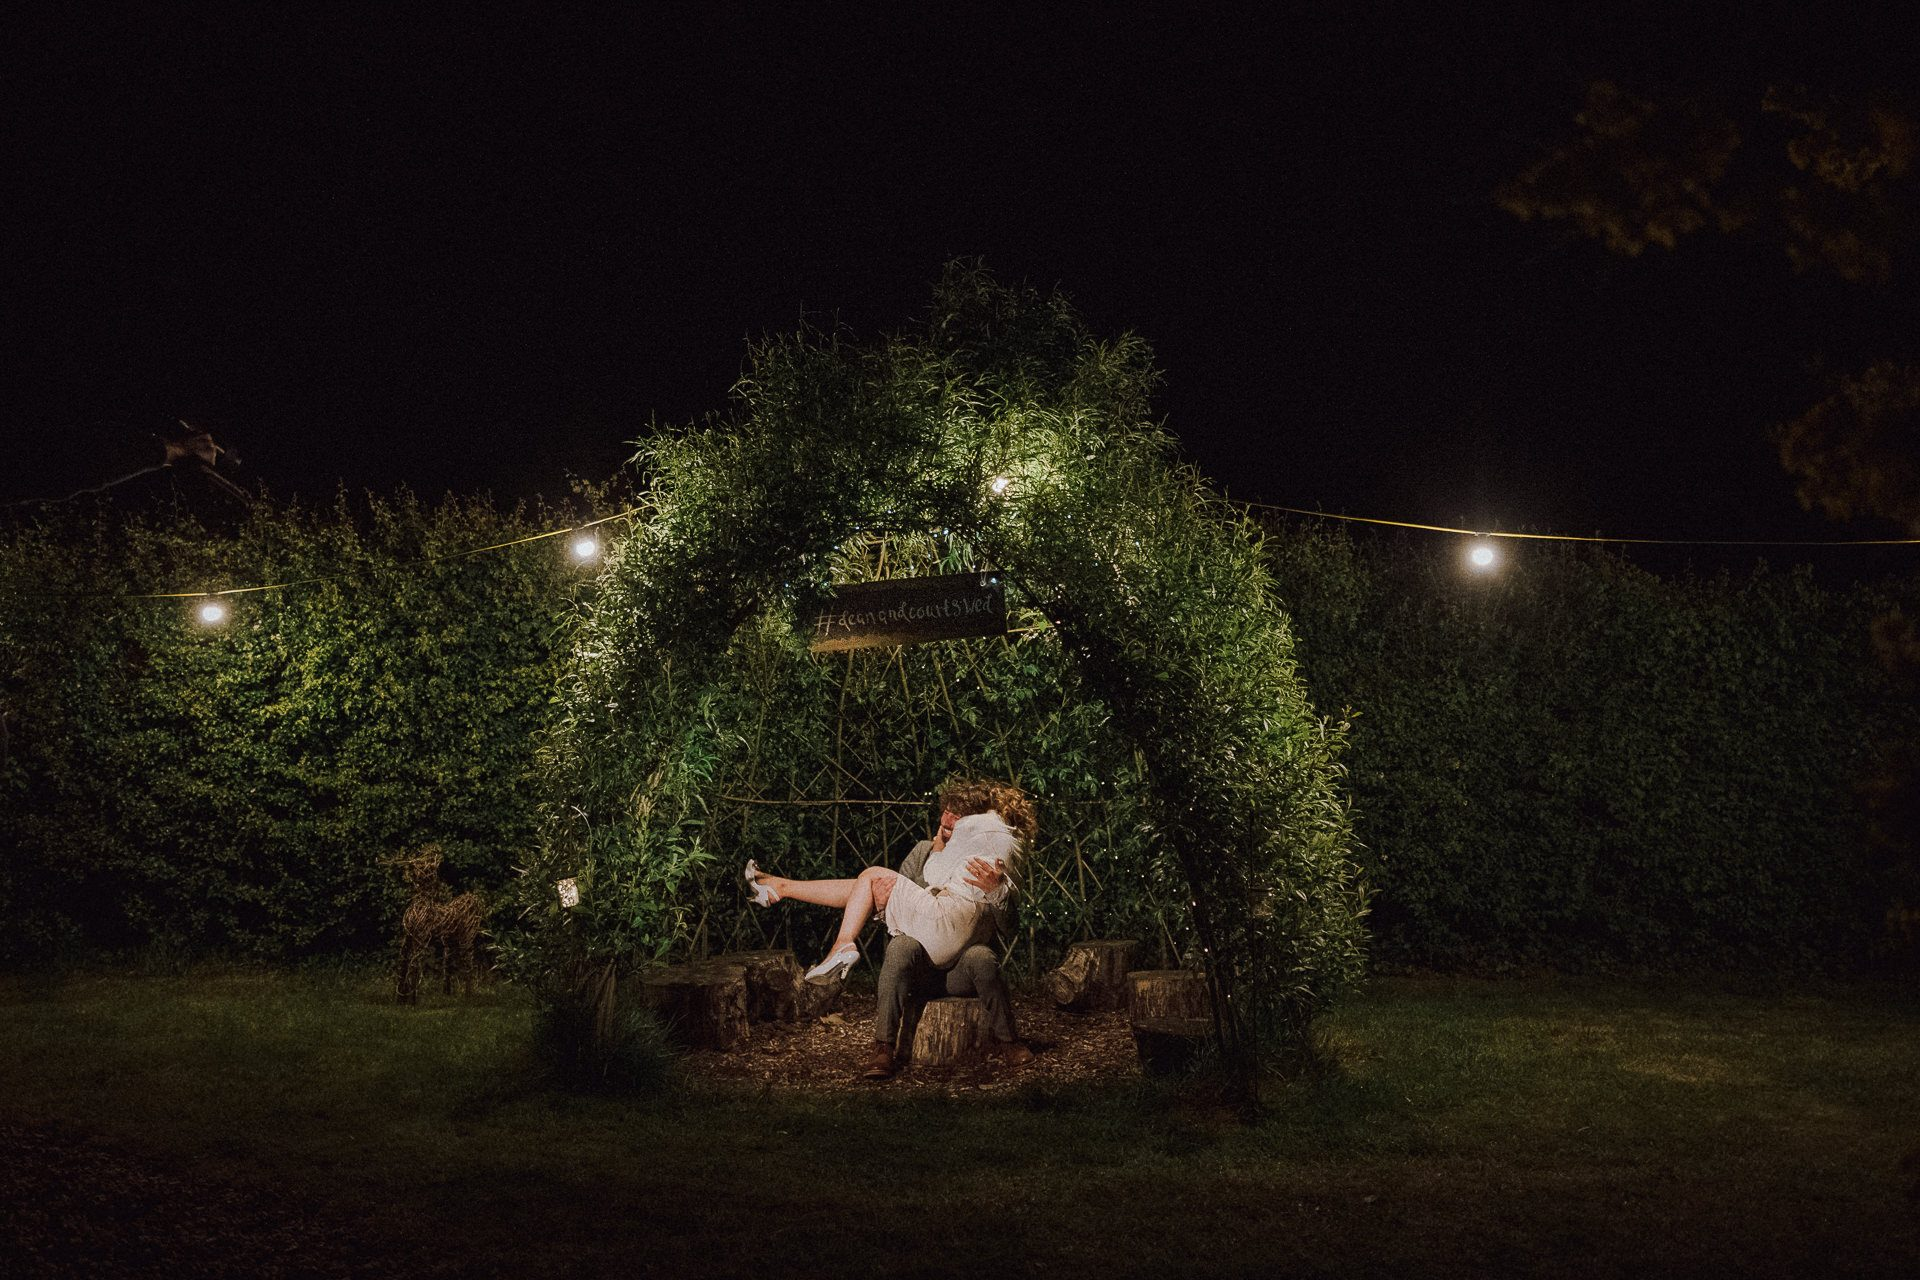 0050-DEVON-SOMERSET-WEDDING-PHOTOGRAPHER-0208-BEST-OF-2019-LOUISE-MAY-DEVON-SOMERSET-WEDDING-PHOTOGRAPHY-LM2_3155